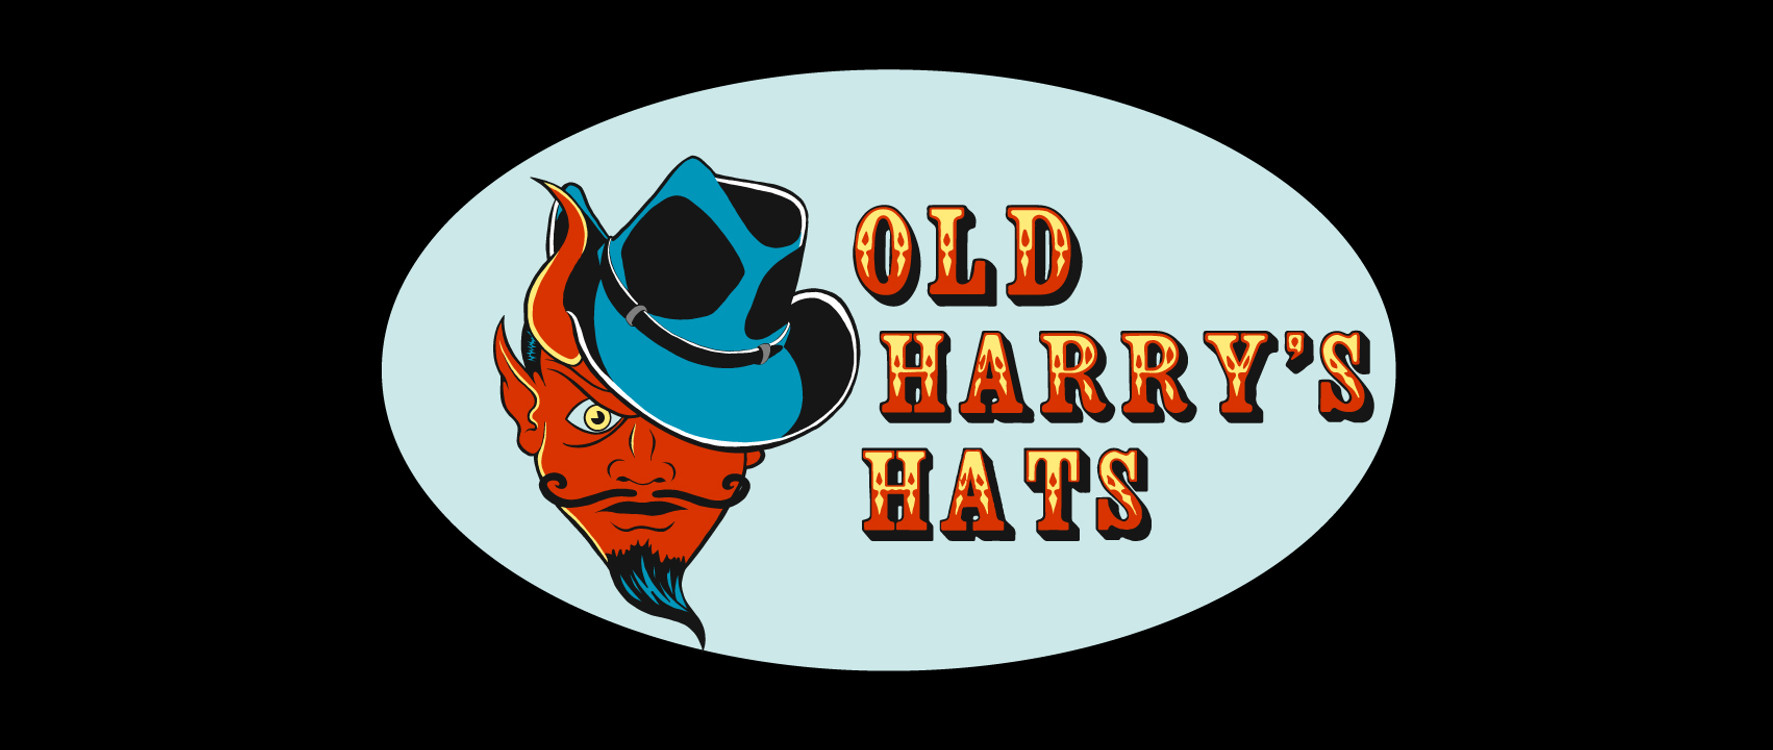 Old Harry's Hats